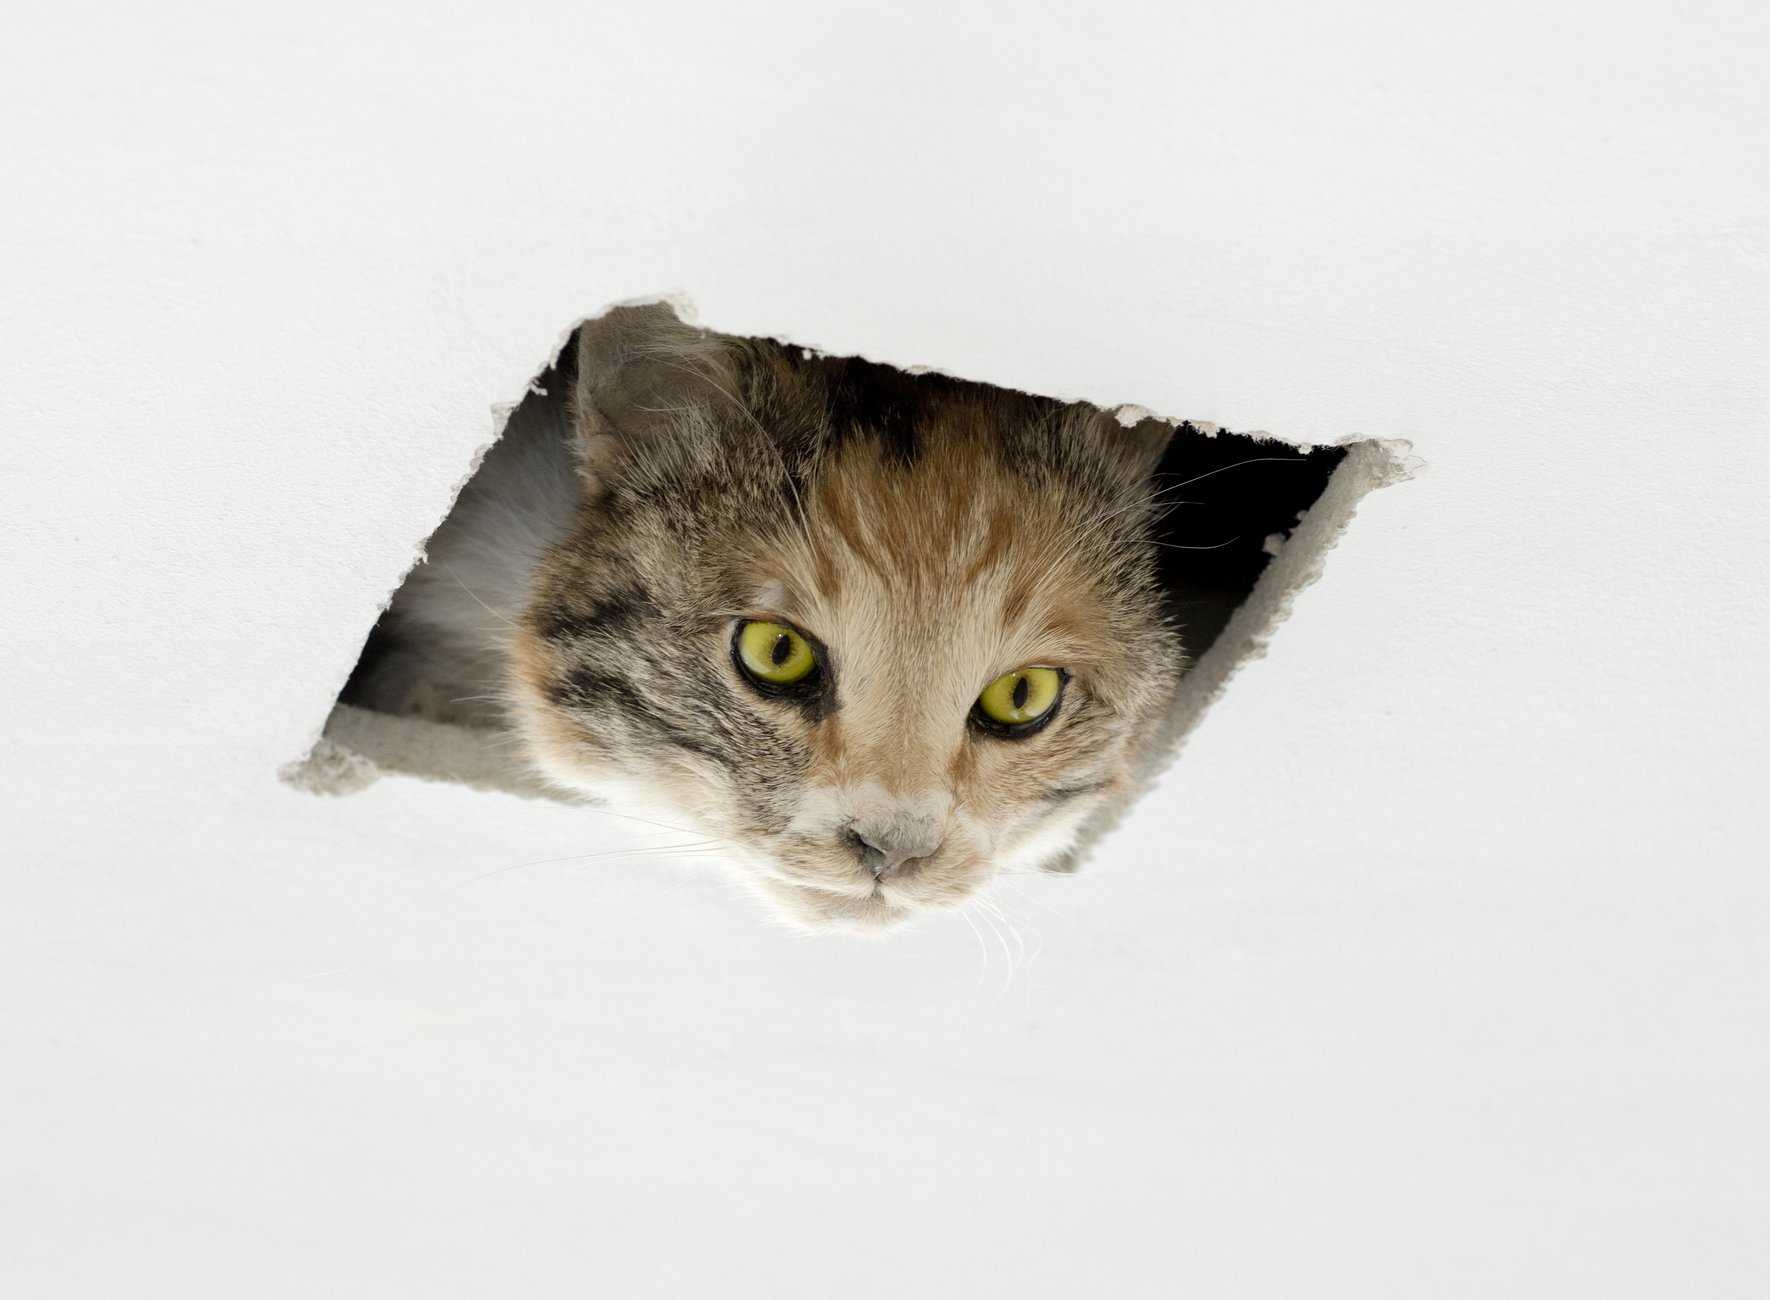 a cat peering through a rectangular cutout of a wall or ceiling